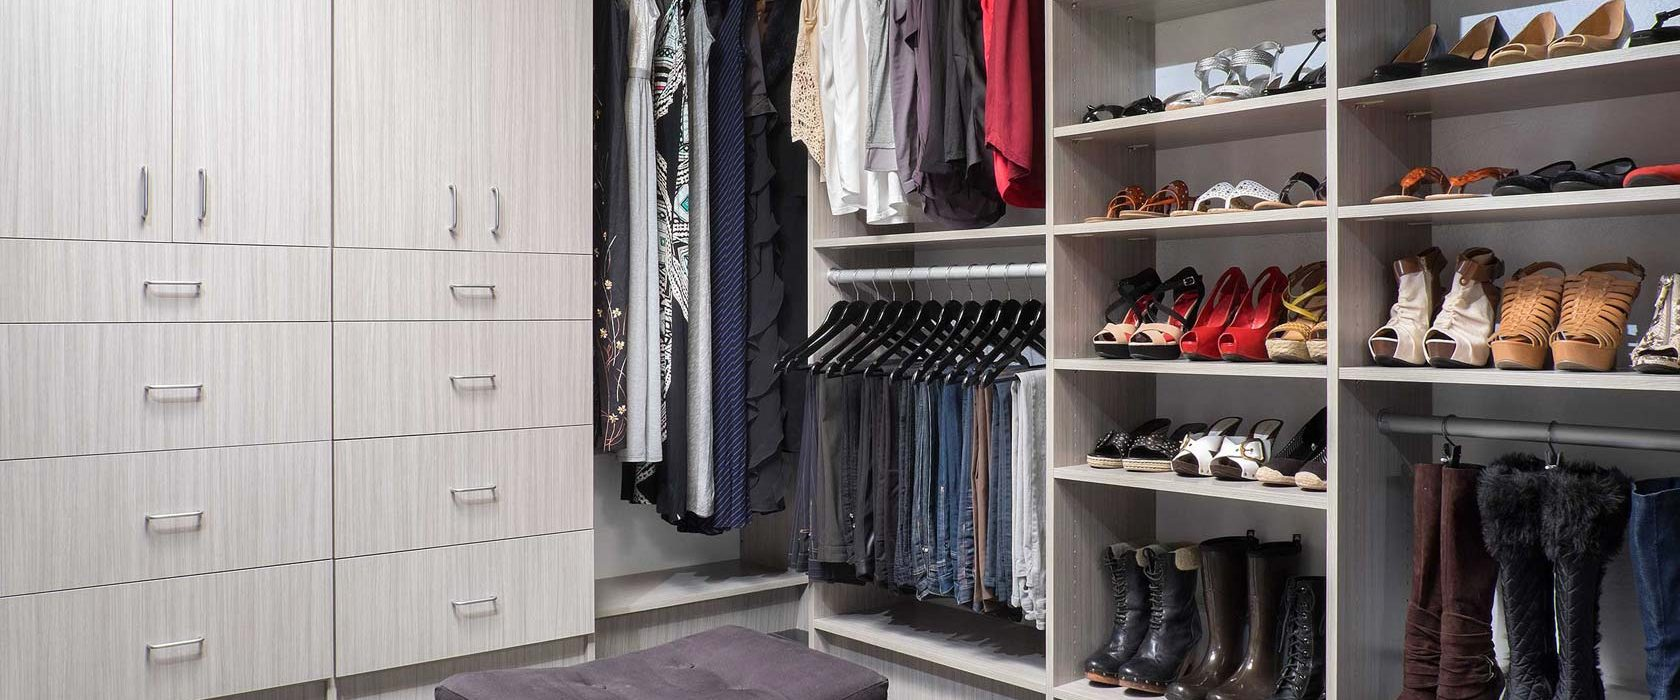 gallery of custom closet images